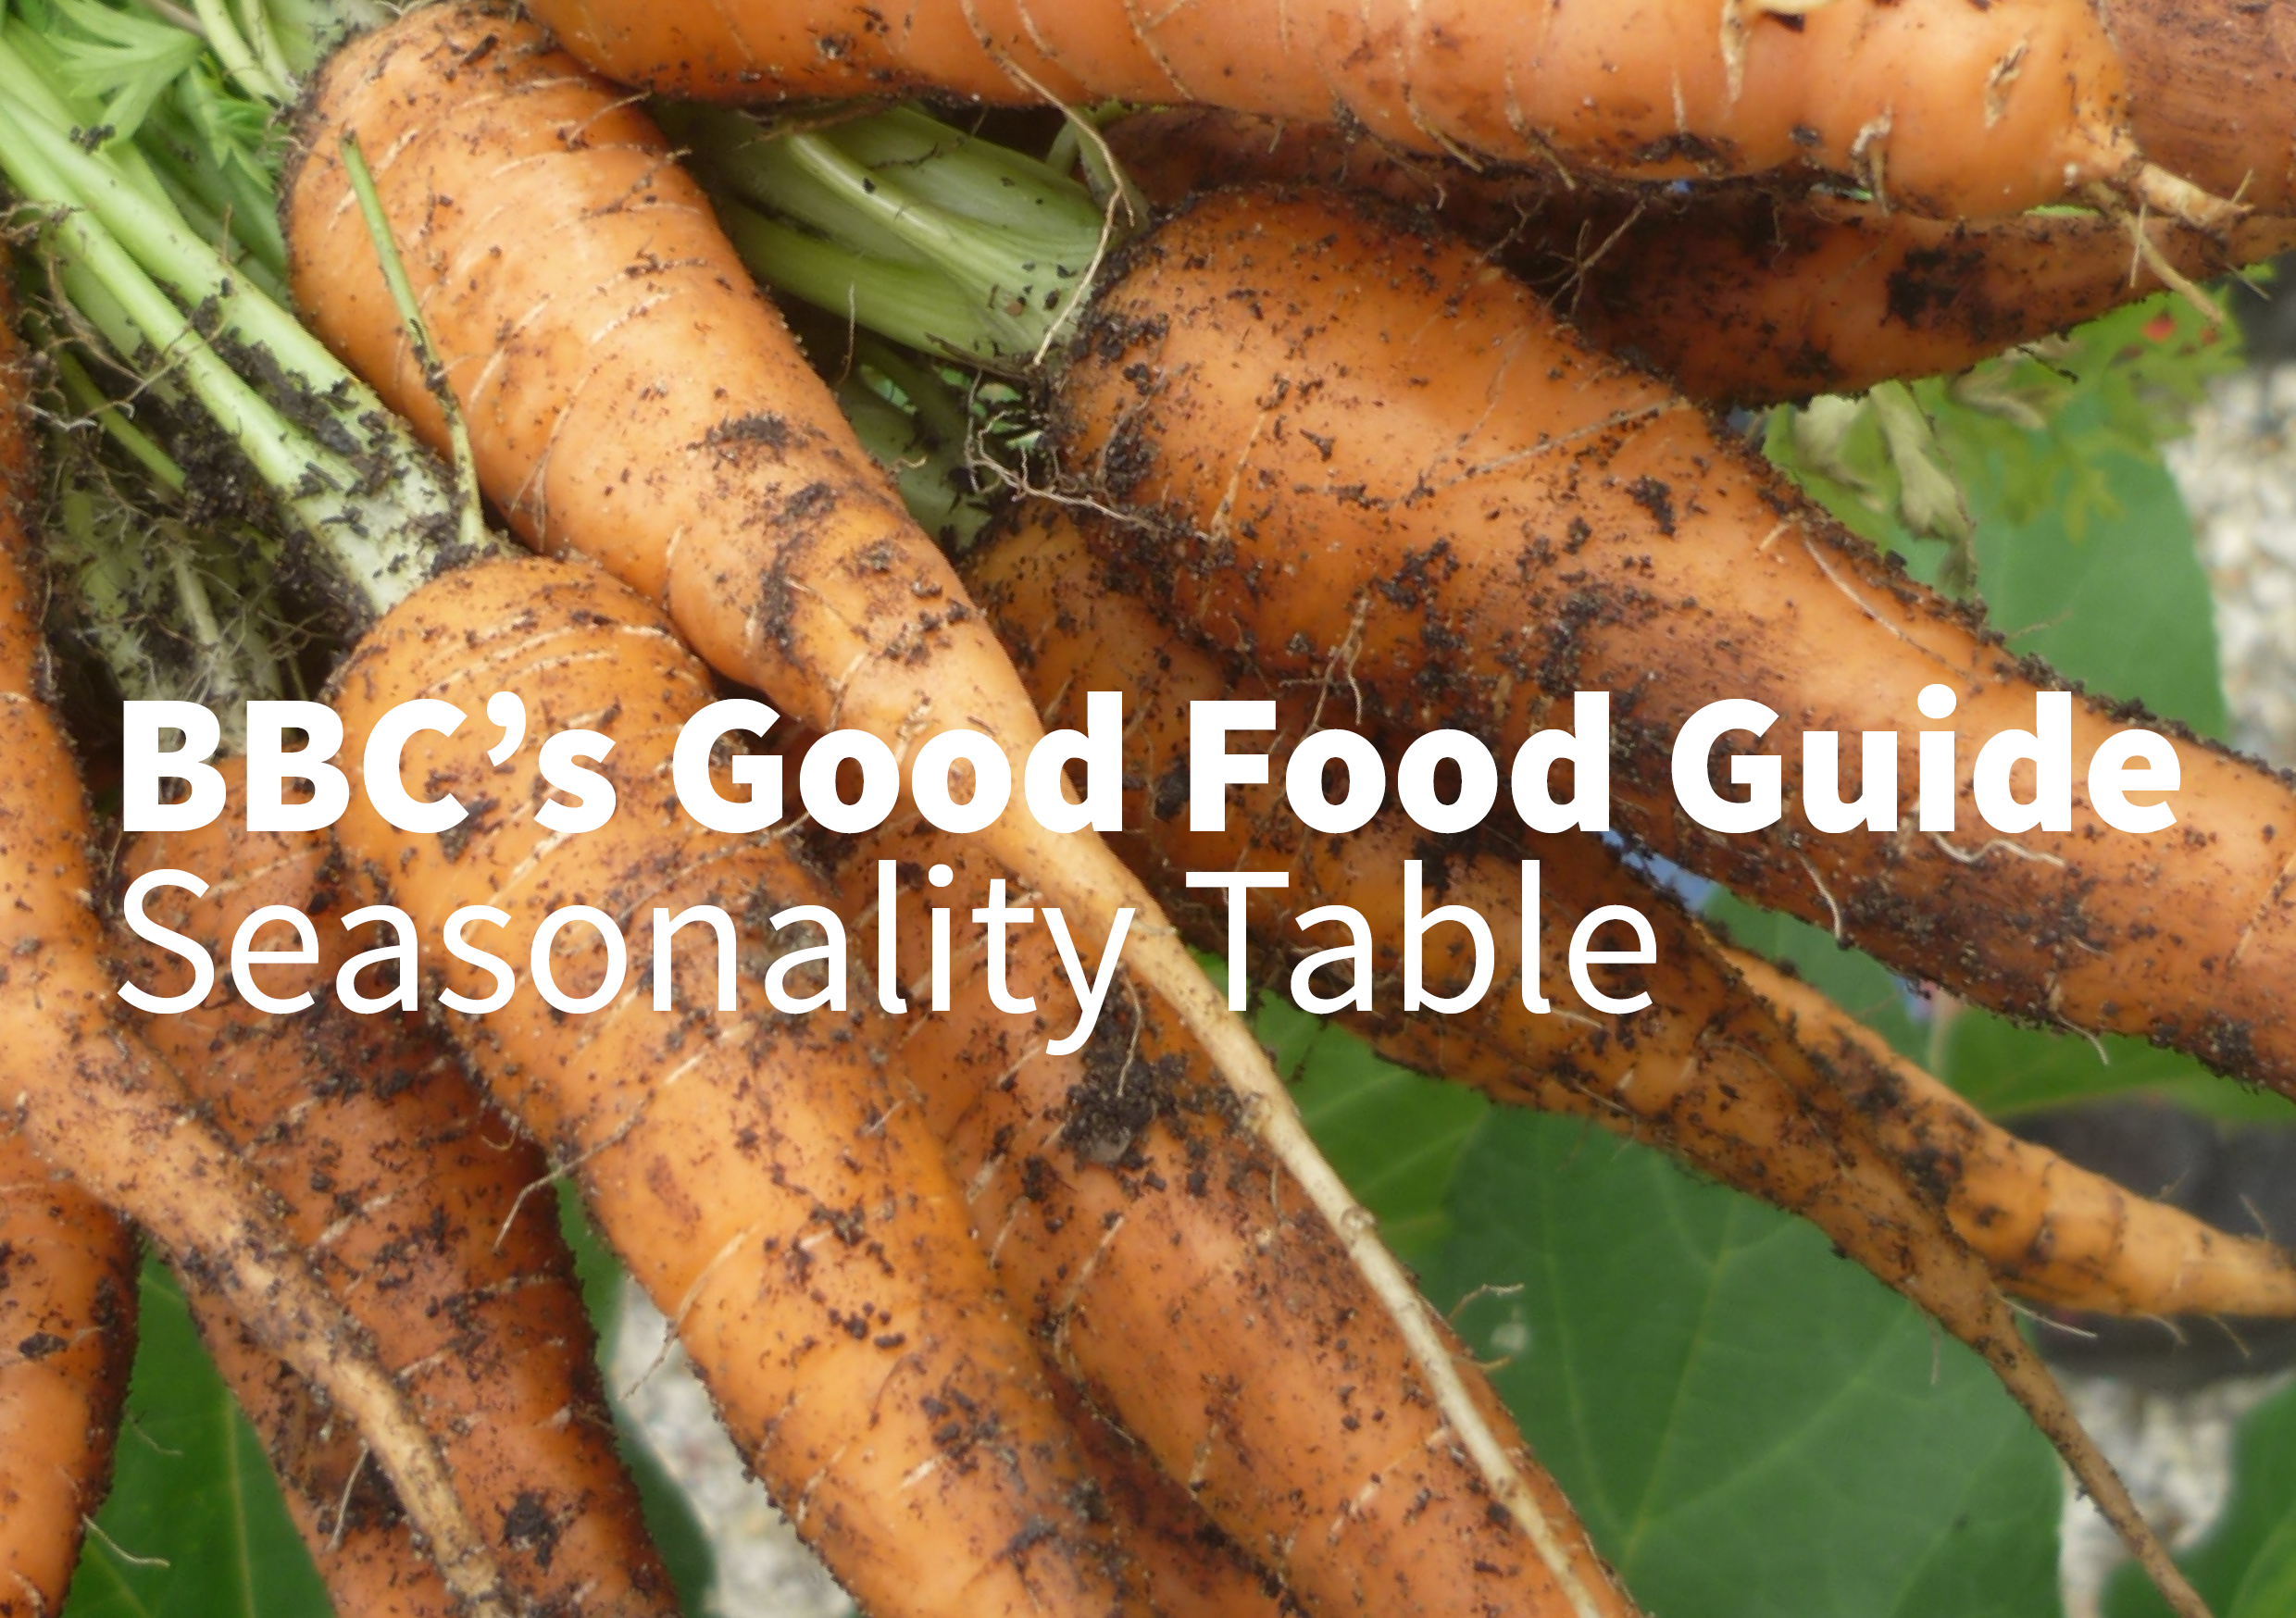 Link to BBC's Food Guide Seasonality Table